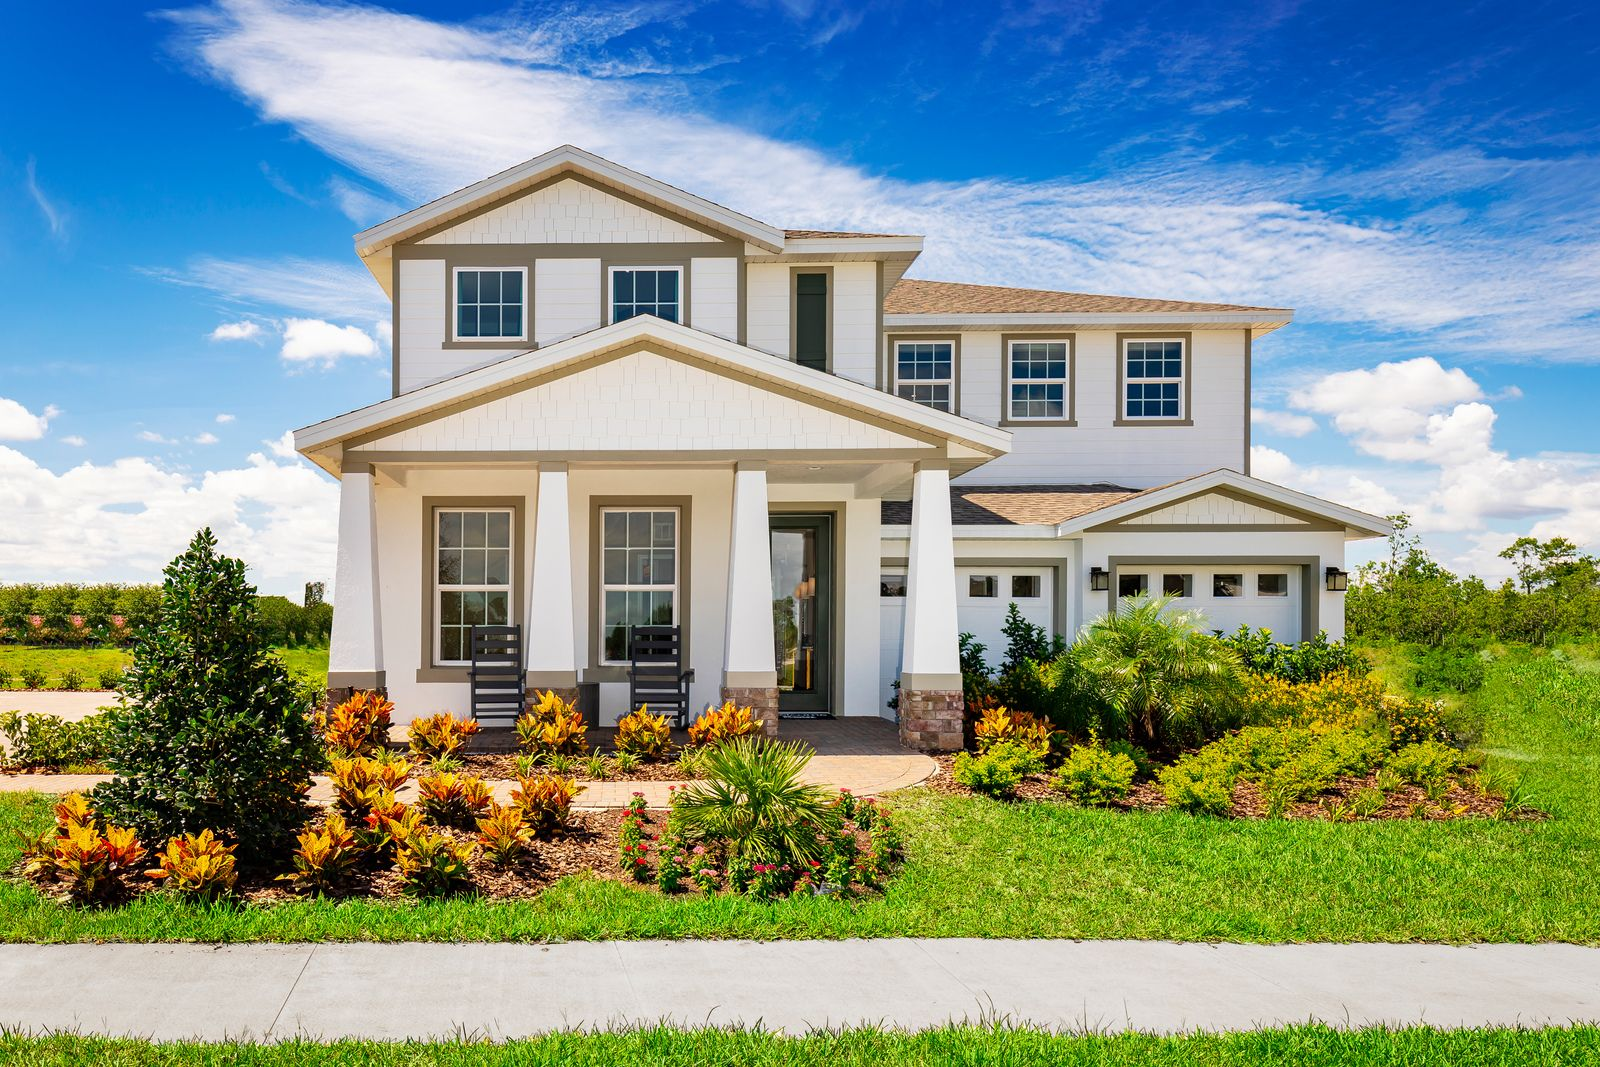 Welcome to the Sanctuary at Lakes of Windermere!:Own a brand new single-family homein the most sought-after zip code in Central Florida! From the Upper $300s. You've Earned This!Schedule a visittoday to start making your dream a realty!